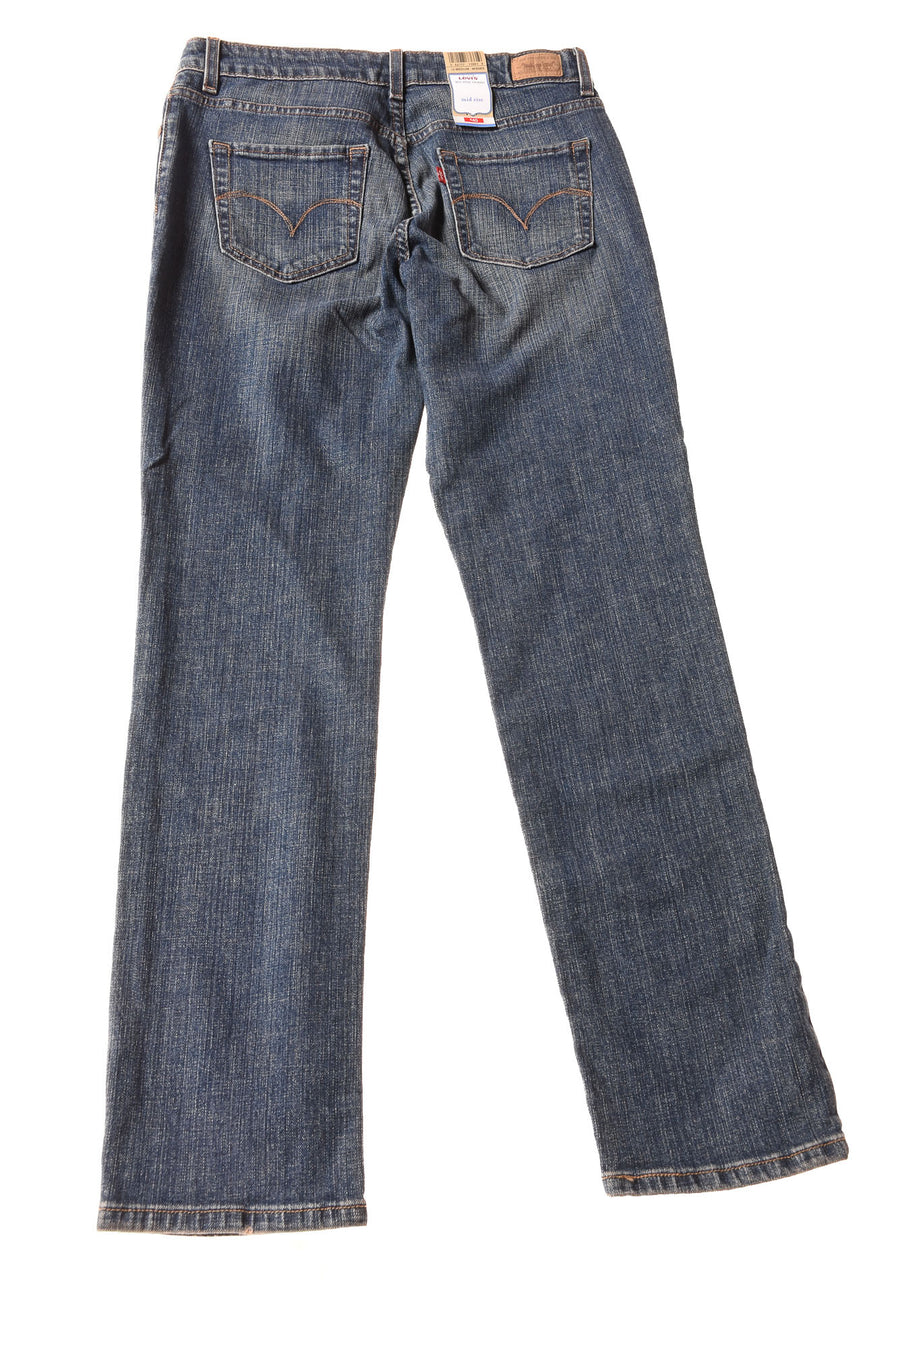 NEW Levi's Women's Jeans 10 Blue